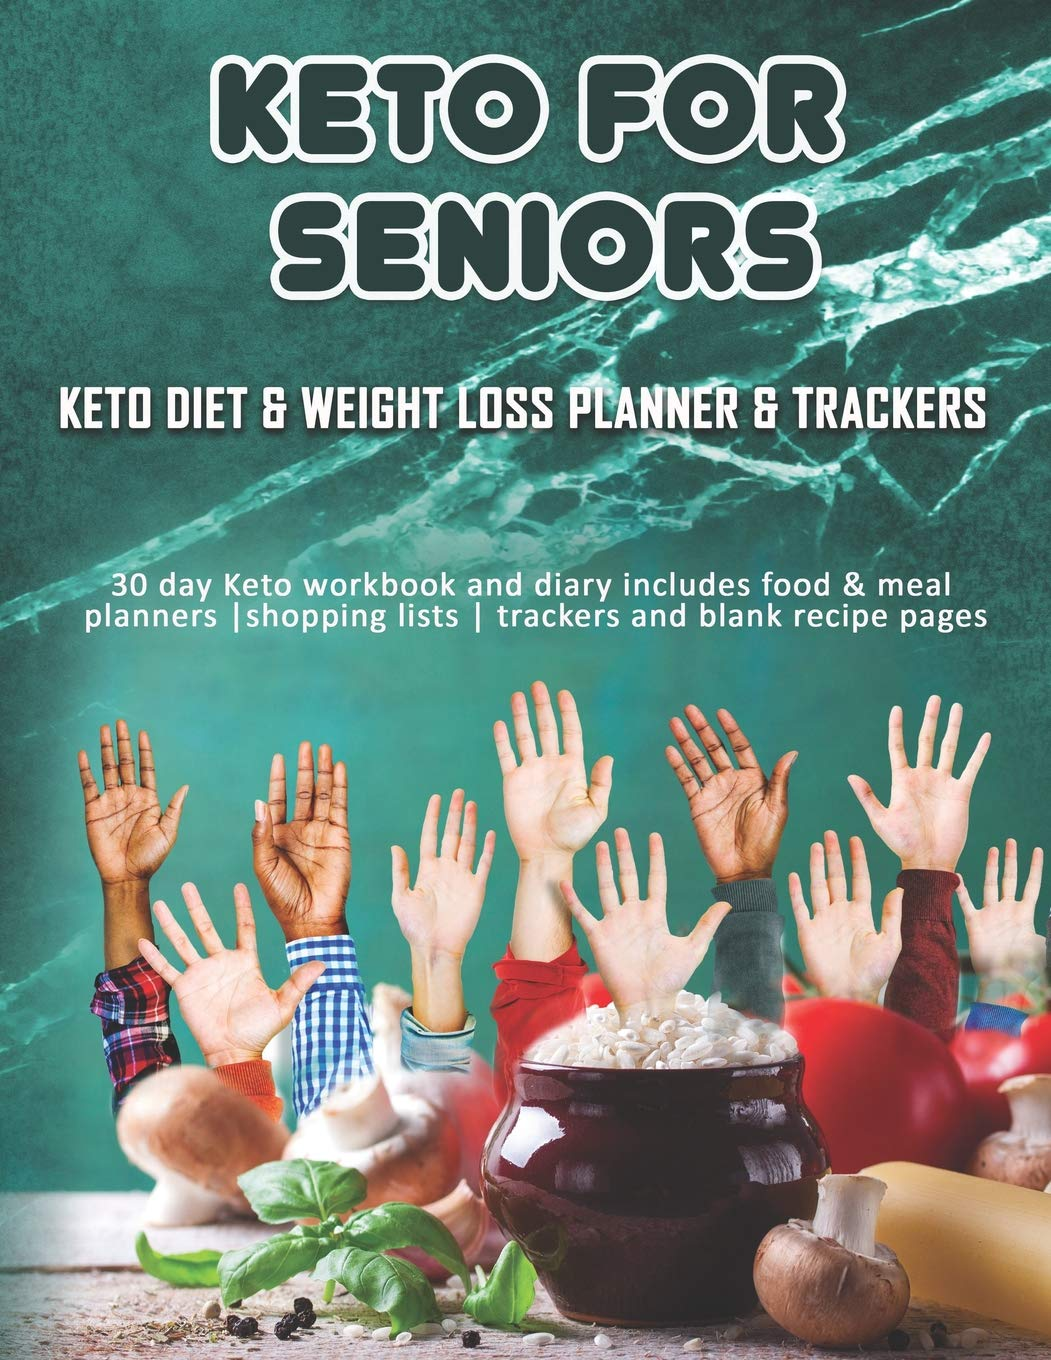 Keto For Seniors: Keto Diet & Weight Loss Planner & Trackers: 30 day Keto workbook and diary includes food & meal planners |shopping lists | trackers and blank recipe pages 1